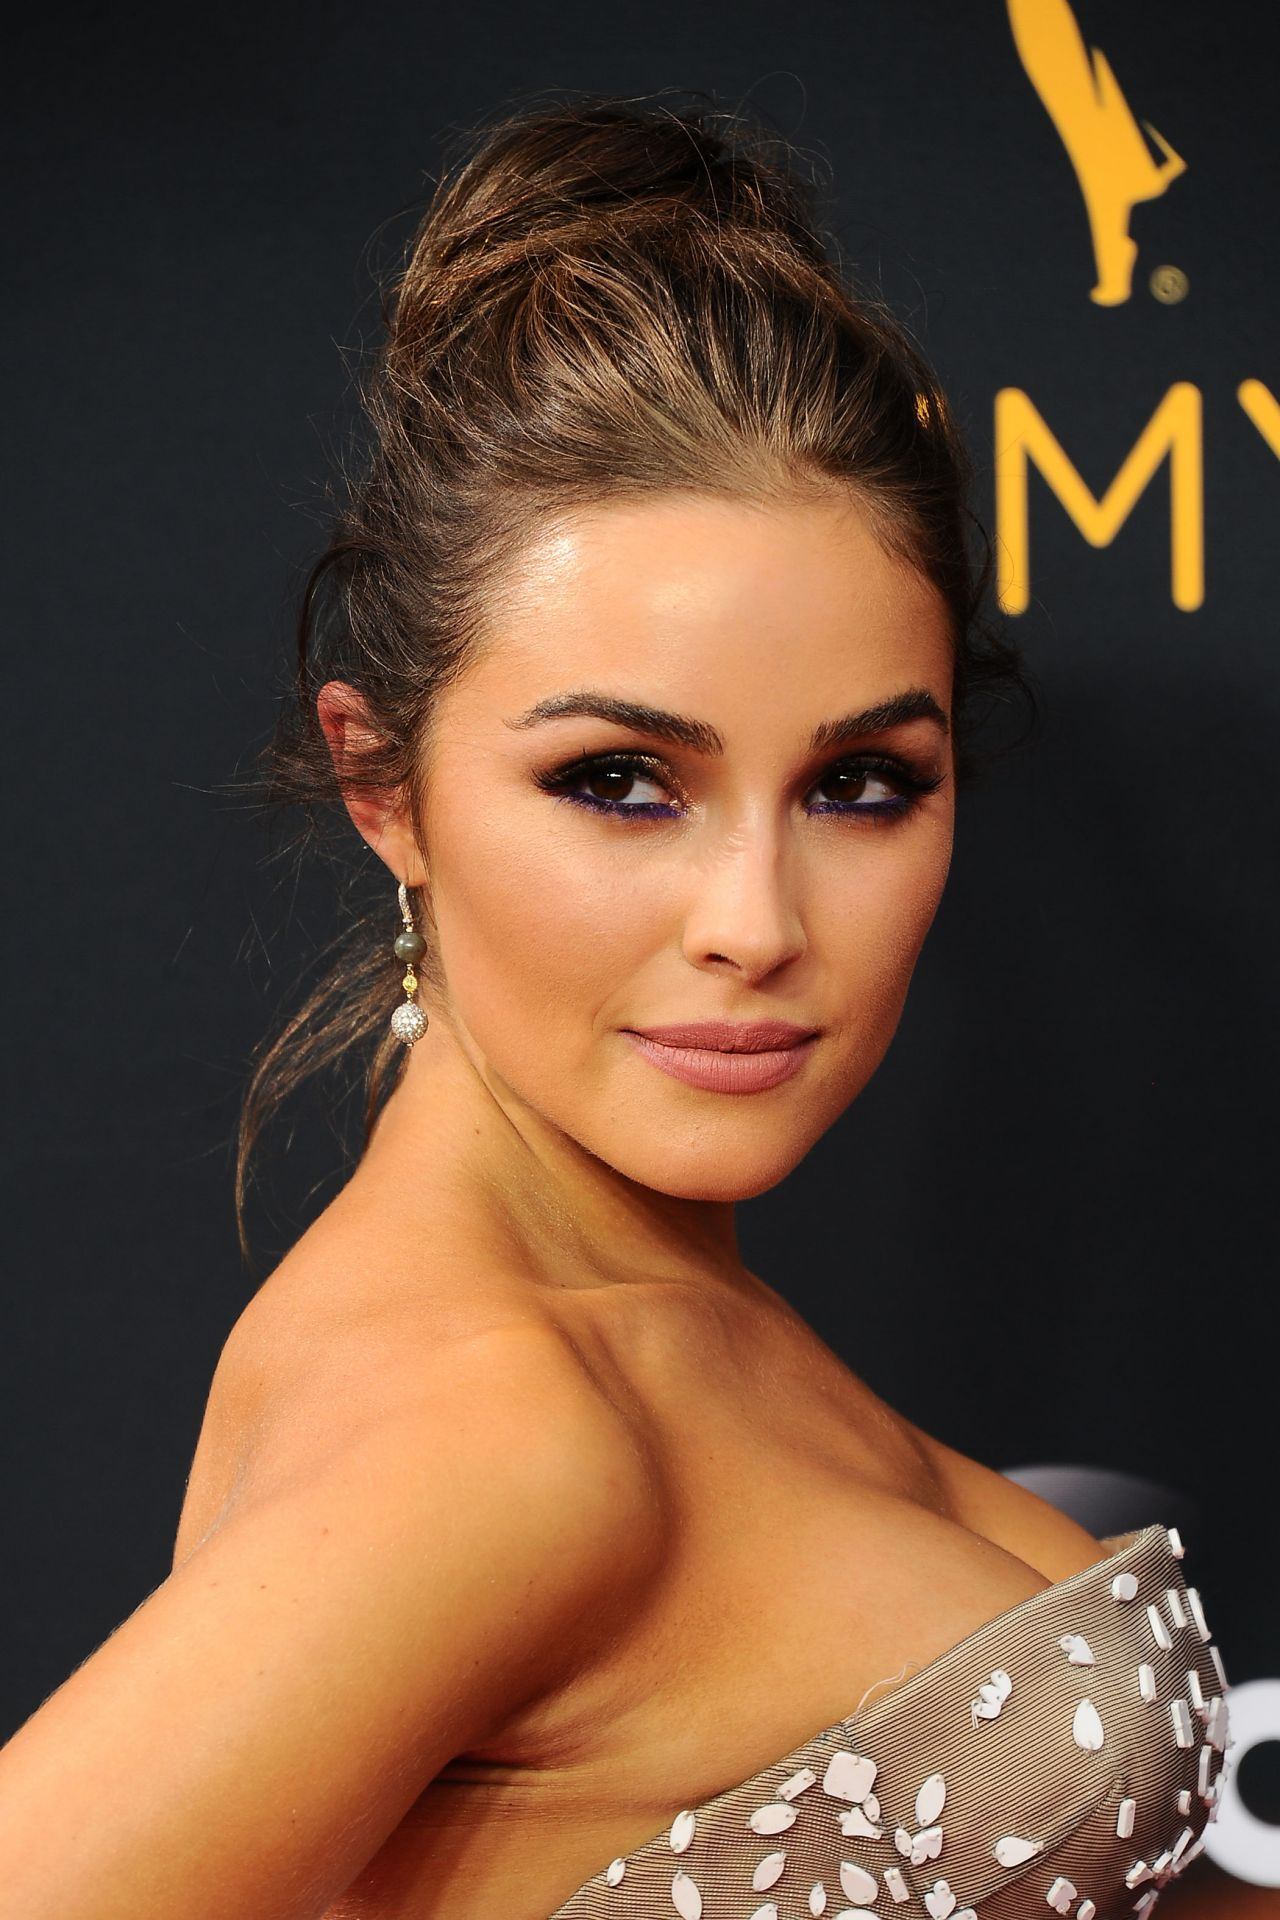 Blog | Cloutier Remix | 30 Years of Global Legacy Olivia Culpo